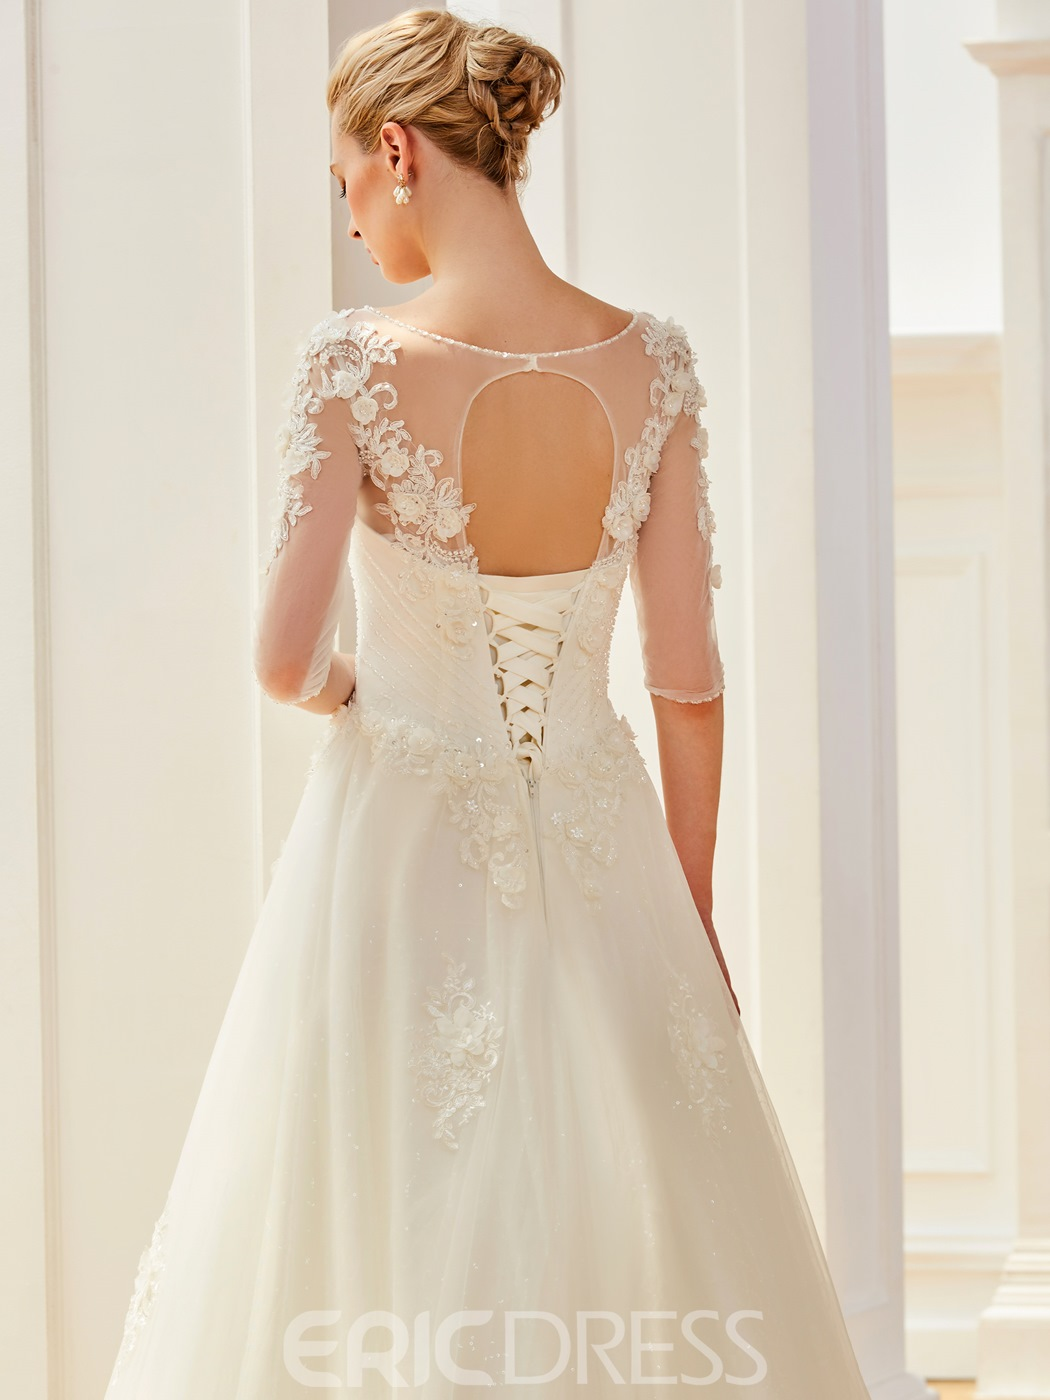 Ericdress Scoop Half Sleeves Appliques Beaded Ball Gown Wedding Dress